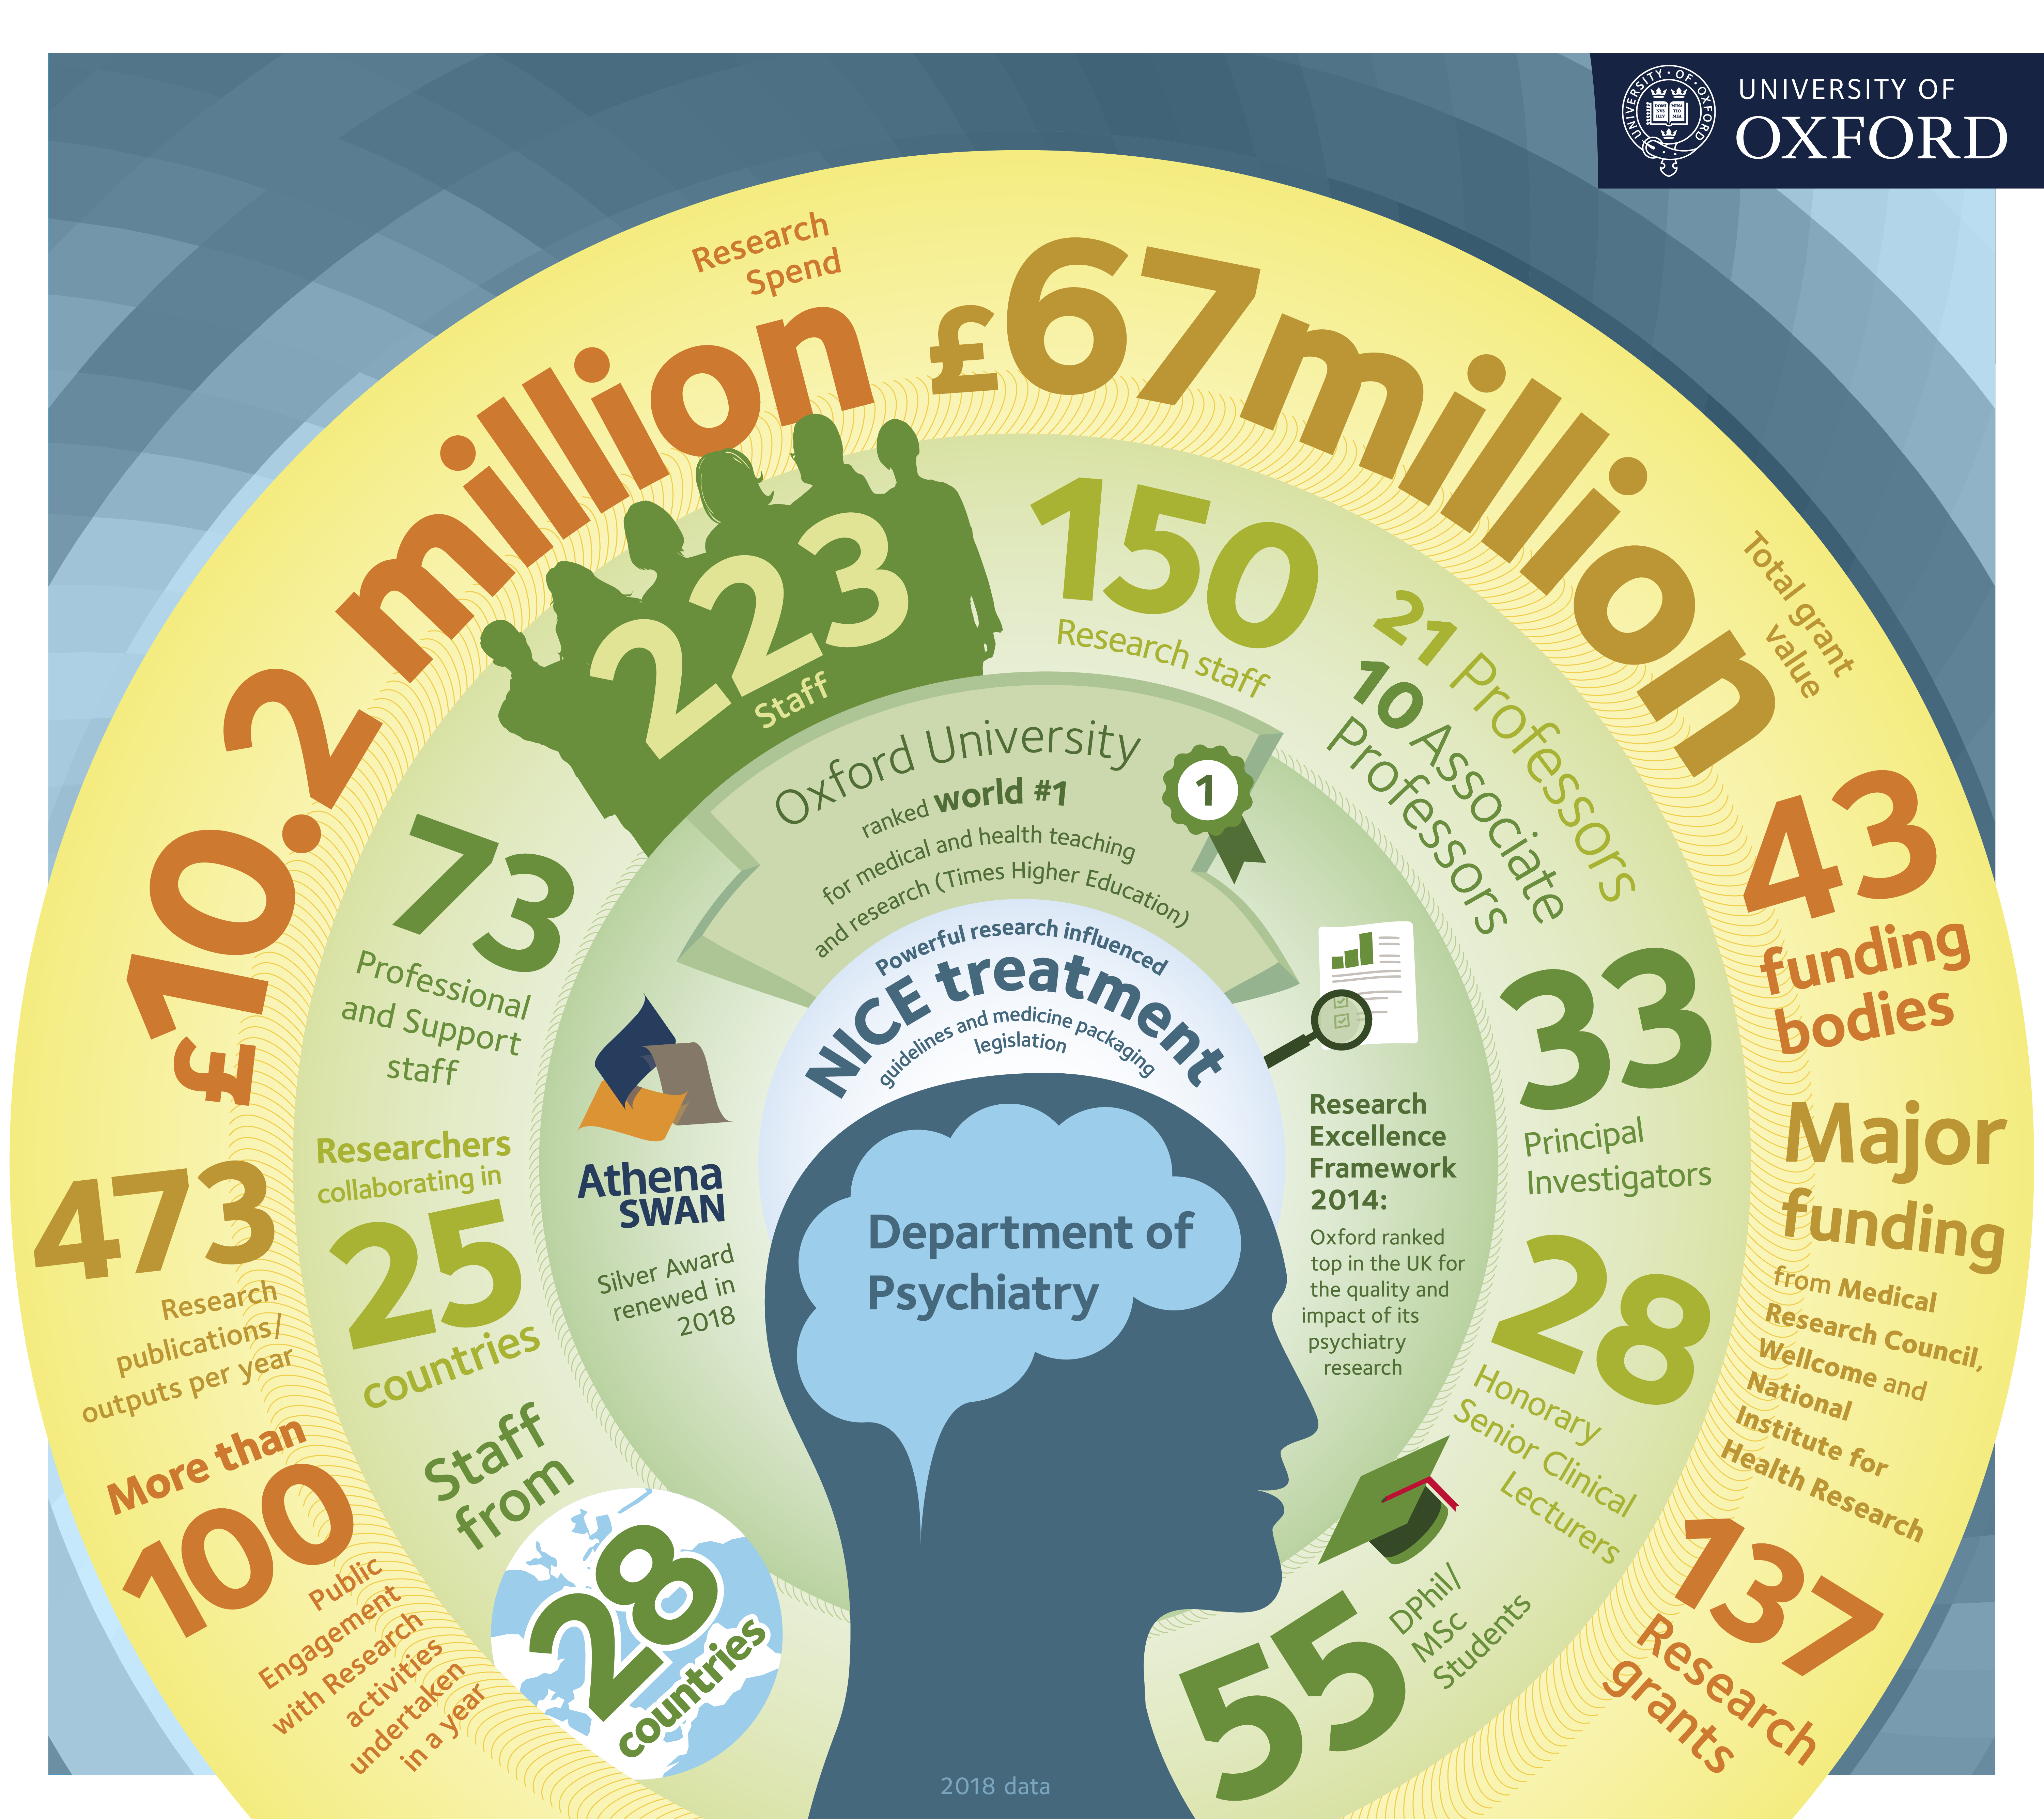 Infographic about the keyu factrs and figures of the Department of Psychiatry